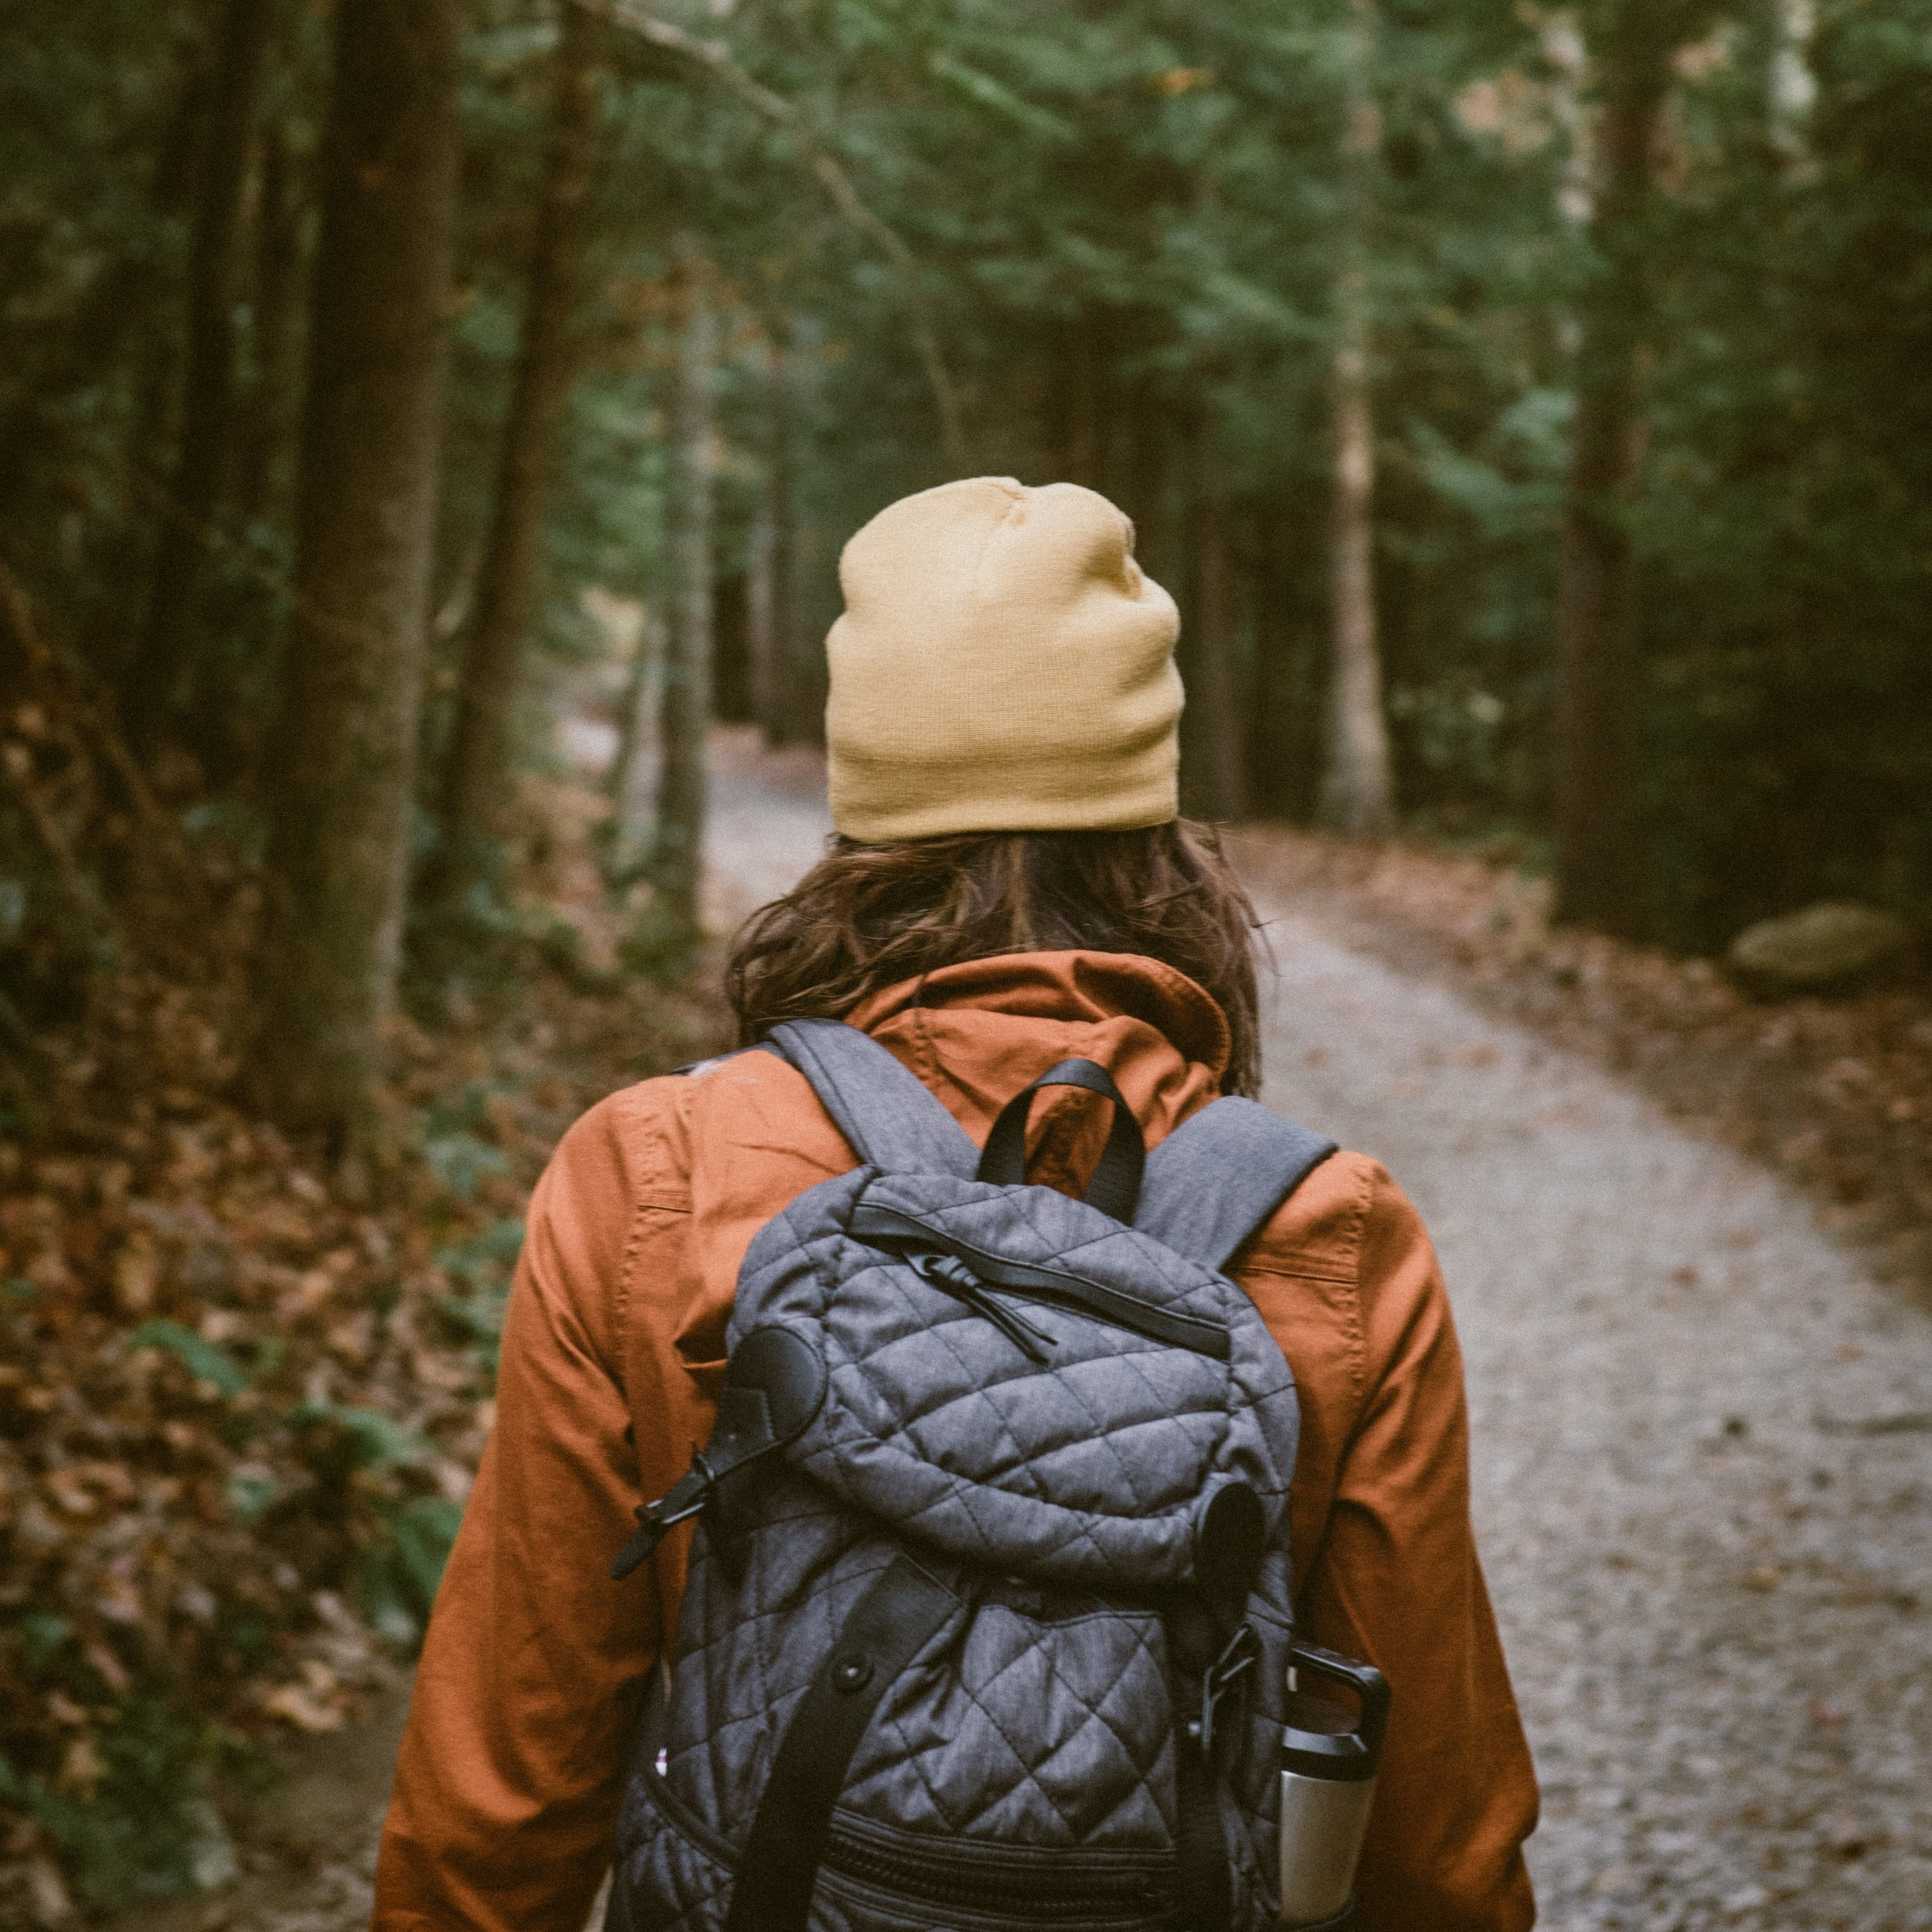 A walk in nature help us switch off, reflect and alleviate the symptoms of stress and low mood